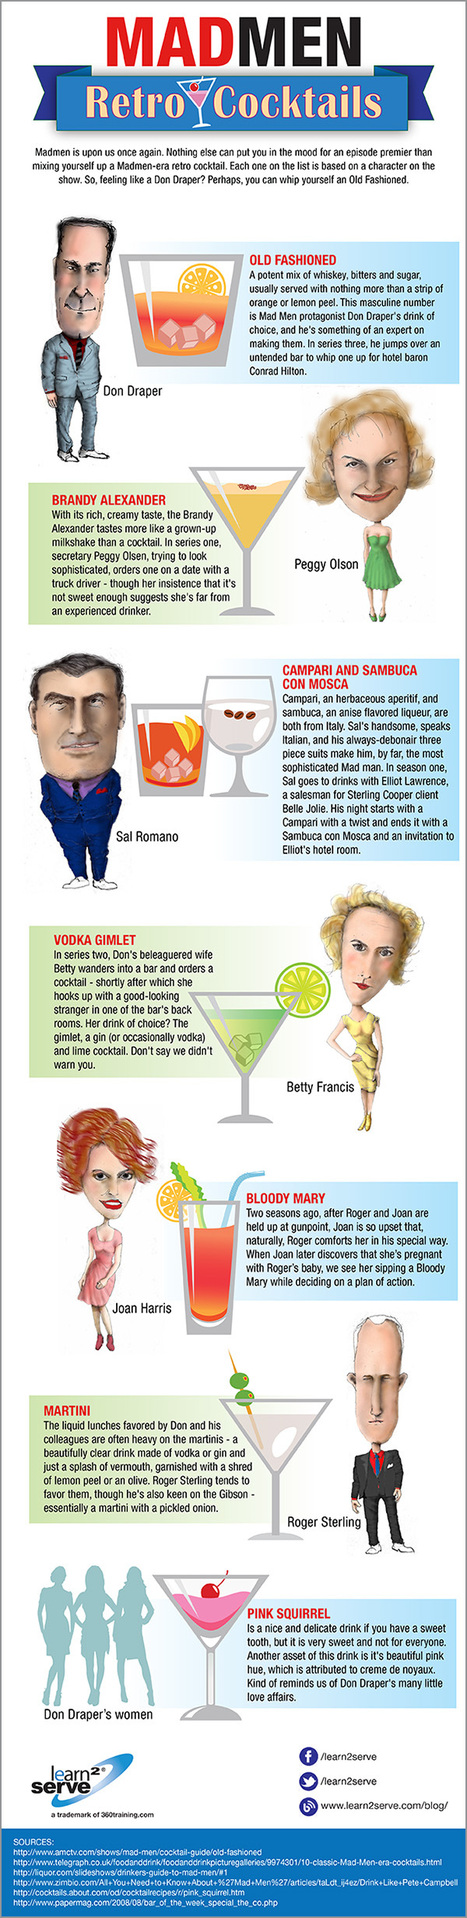 Mad Men Retro Cocktails | Beverage News | Scoop.it